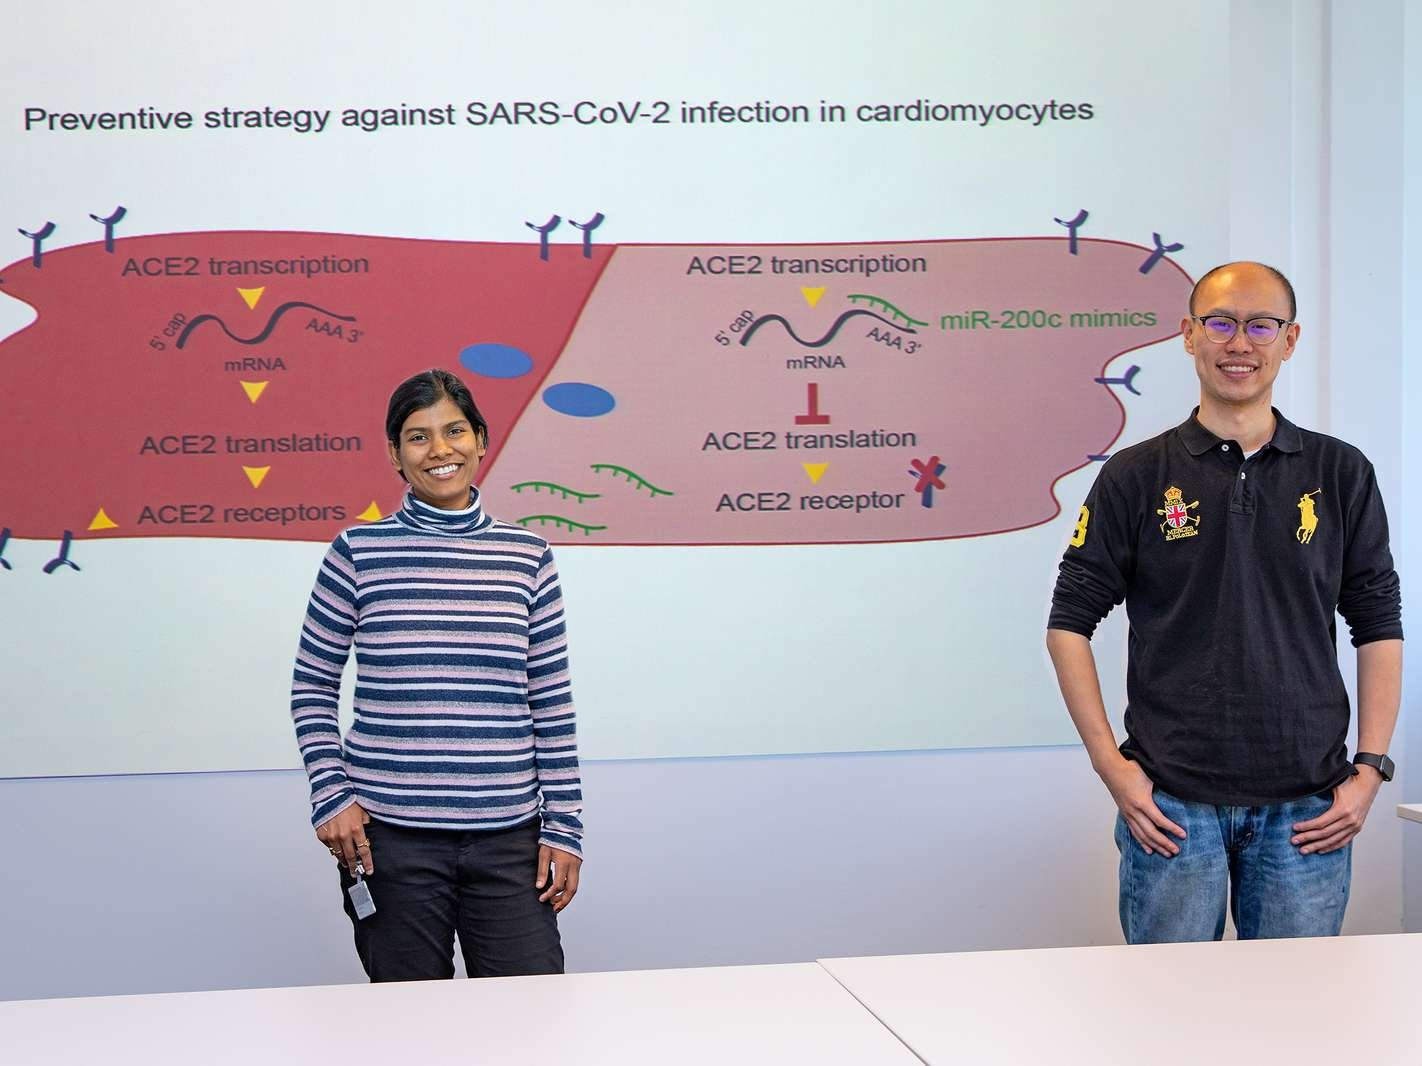 Shambhabi Chatterjee, PhD, (left) and Dongchao Lu in front of the schematic illustration of the blockage of the pathway for the coronavirus to enter the heart muscle. Copyright: Karin Kaiser/MHH